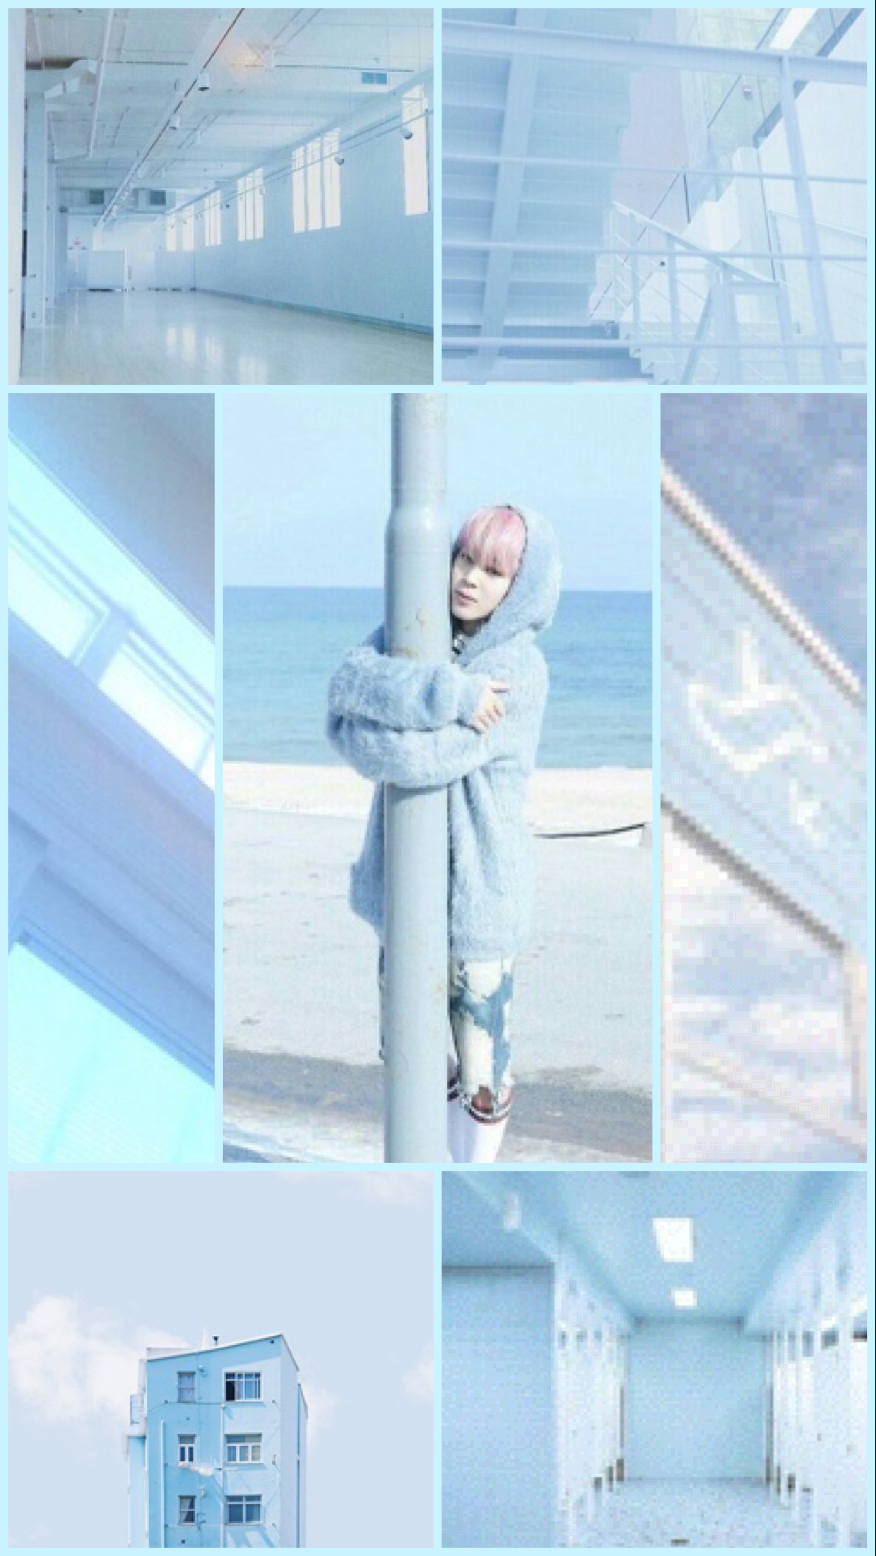 Hey! I made a pastel blue aesthetic Jimin wallpaper! Hope